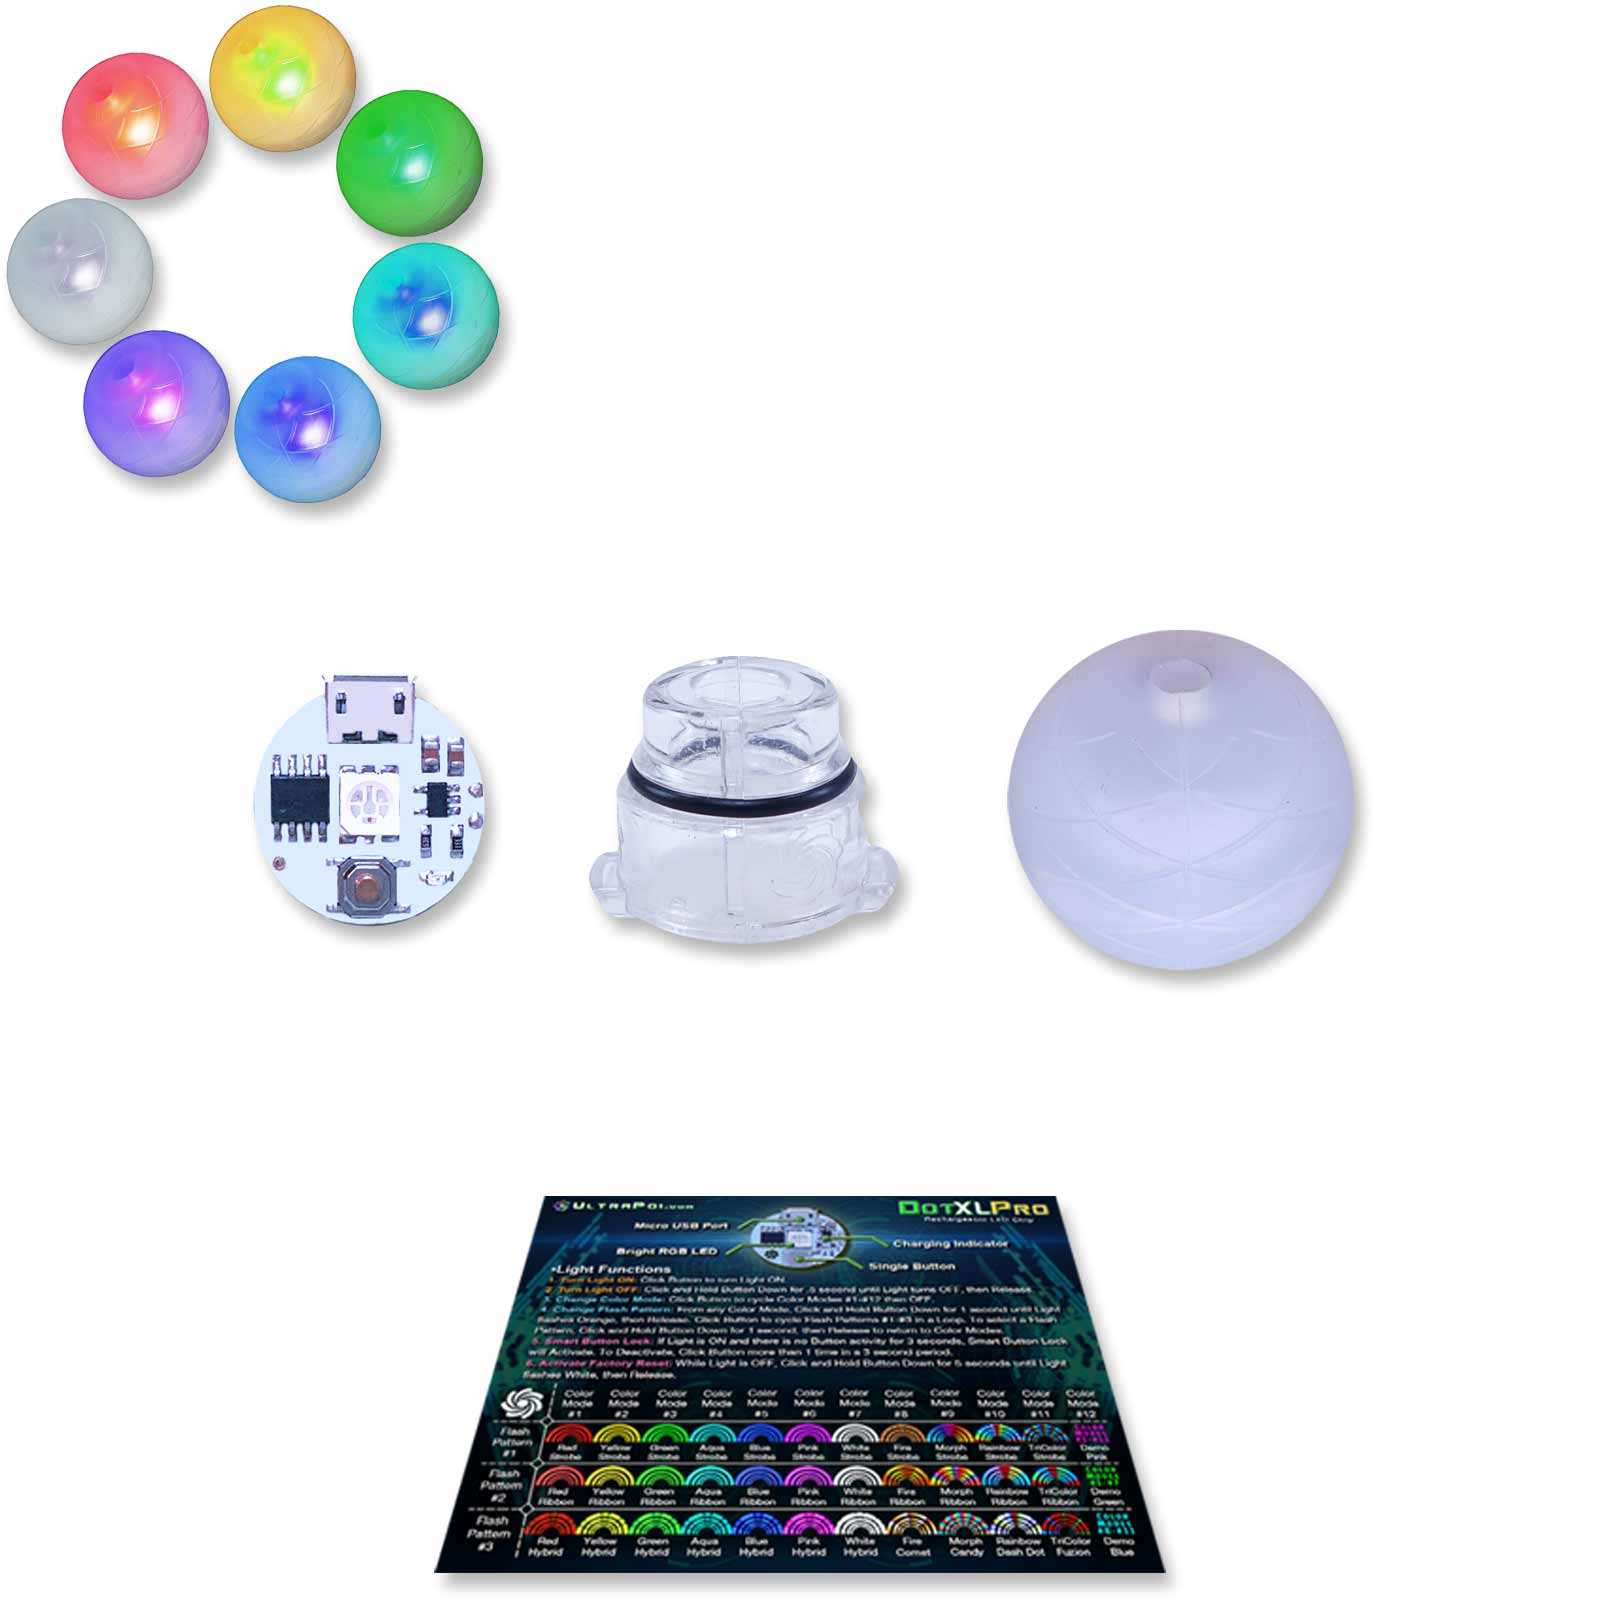 UltraKnob Pro LED Handle (Individual)